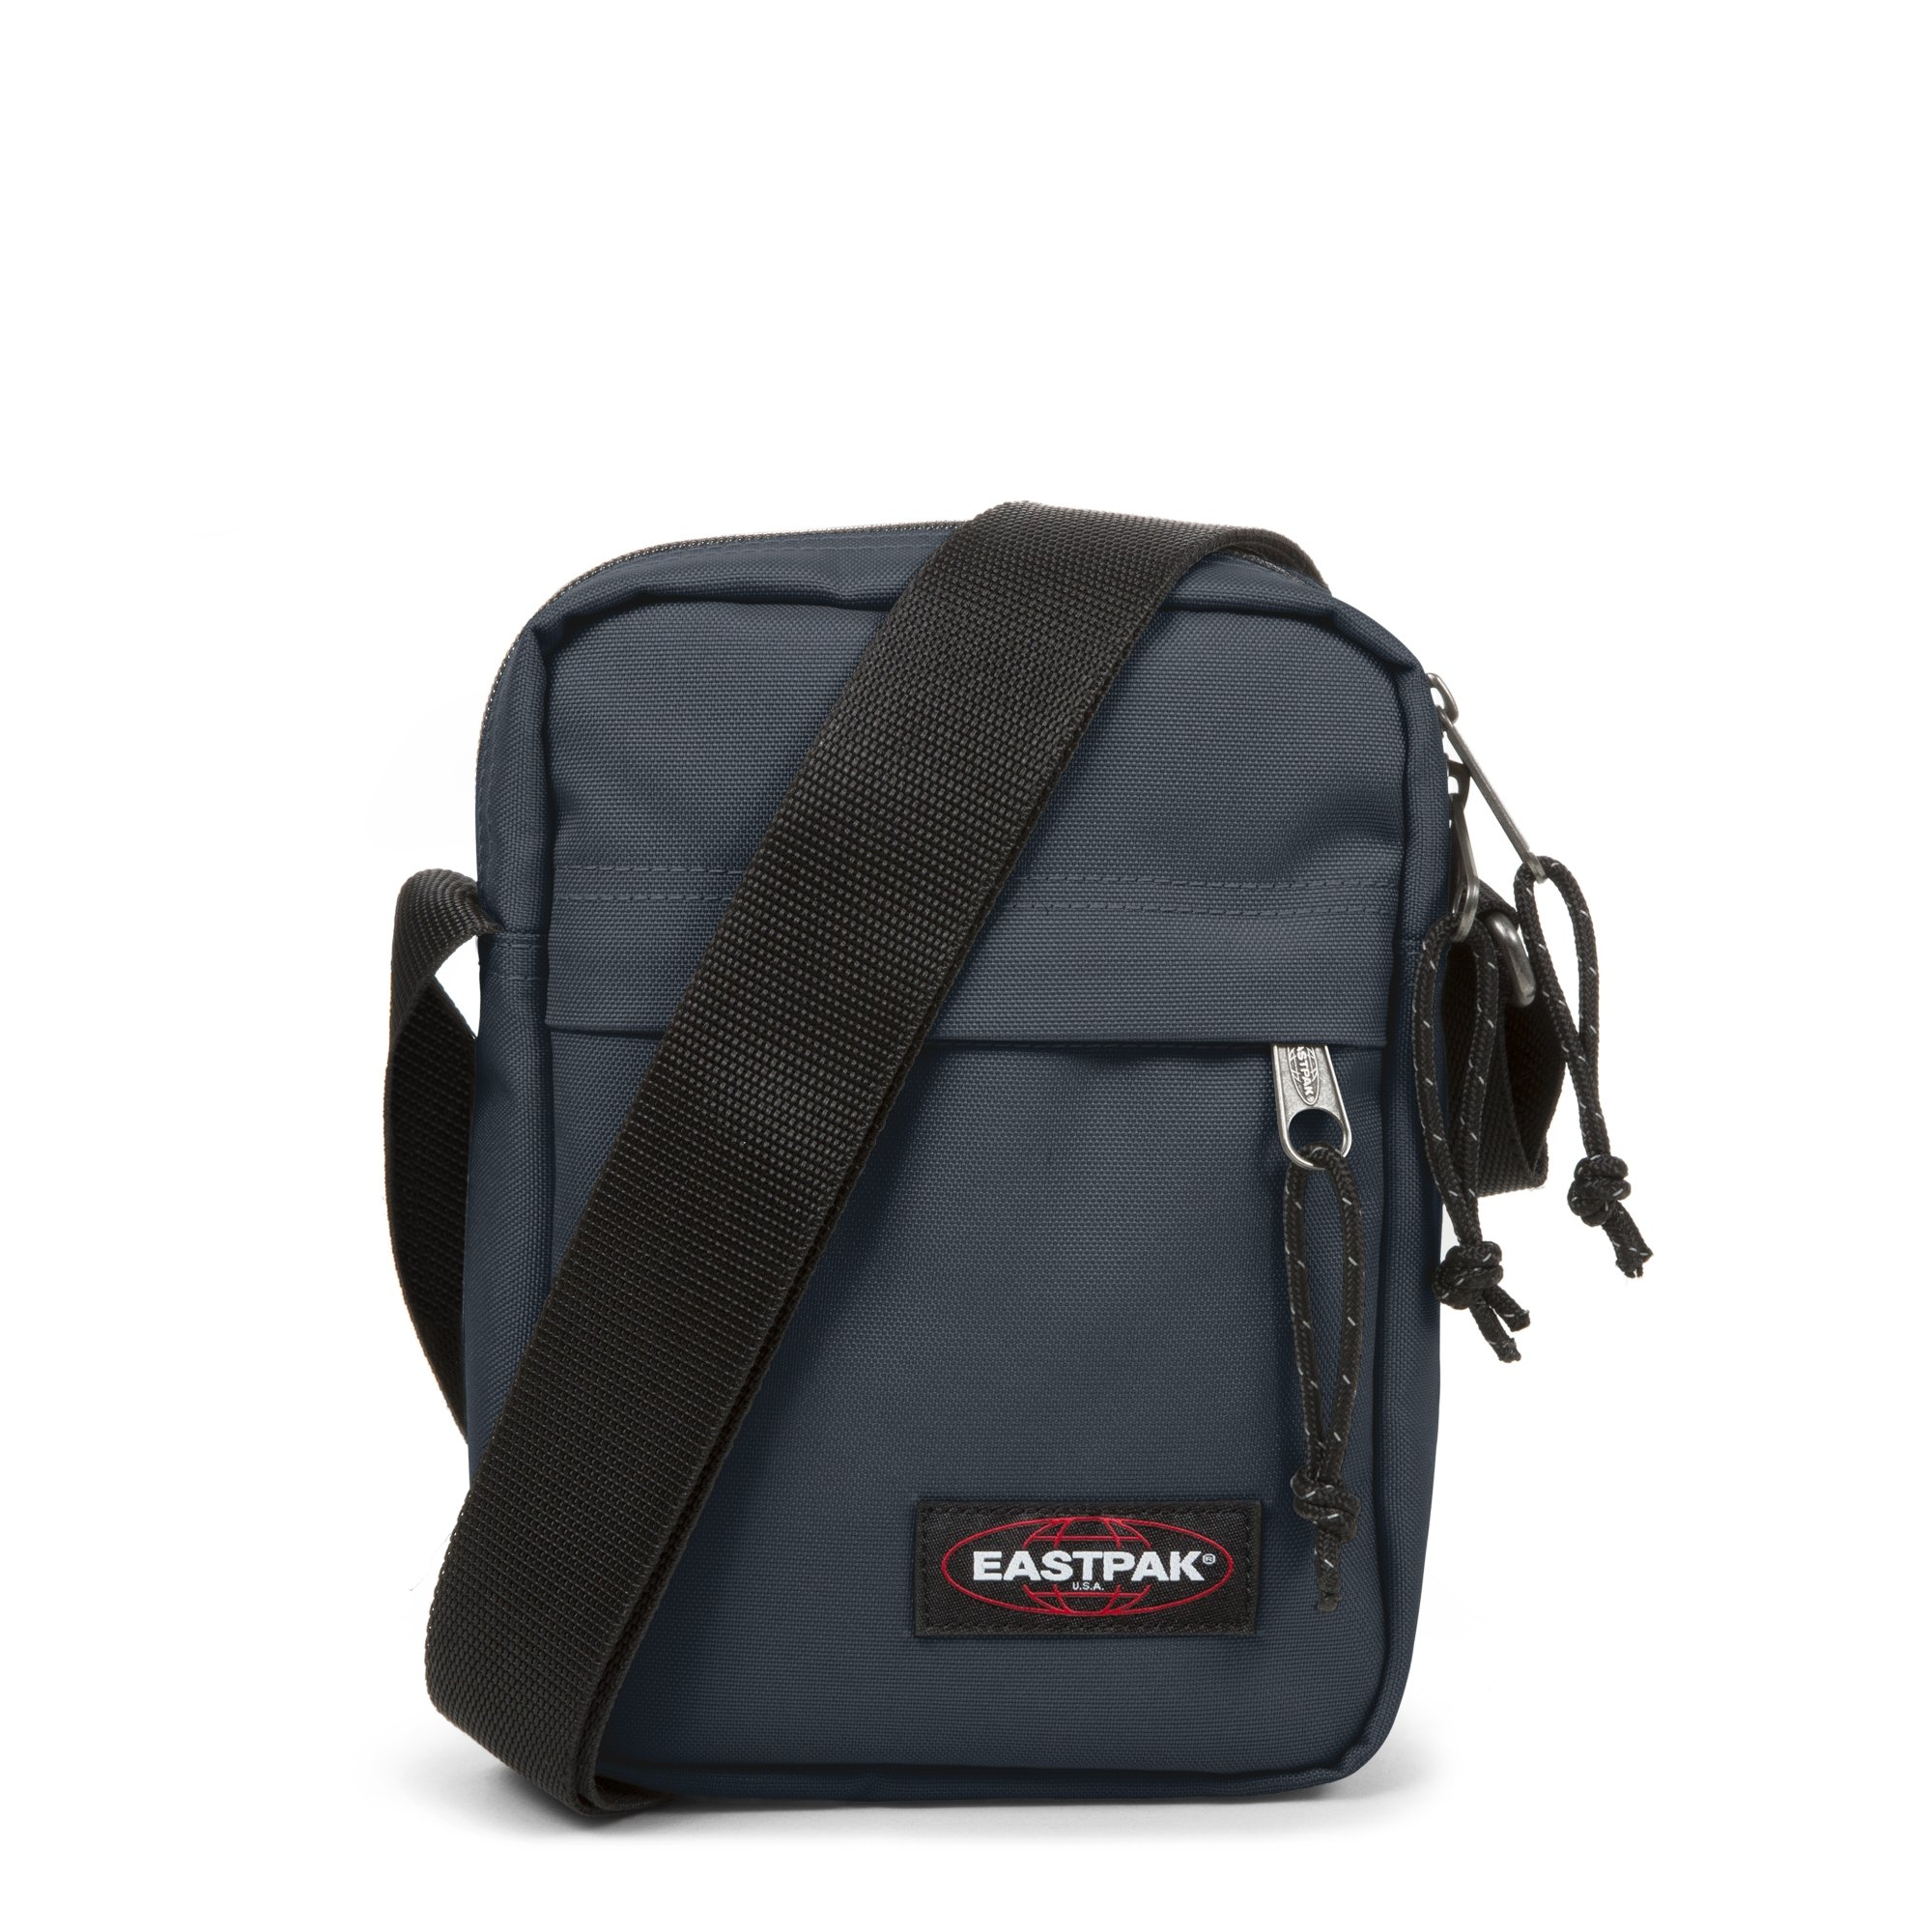 Eastpak The One Bolso Bandolera, 2.5 litros, Azul (Midnight) product image